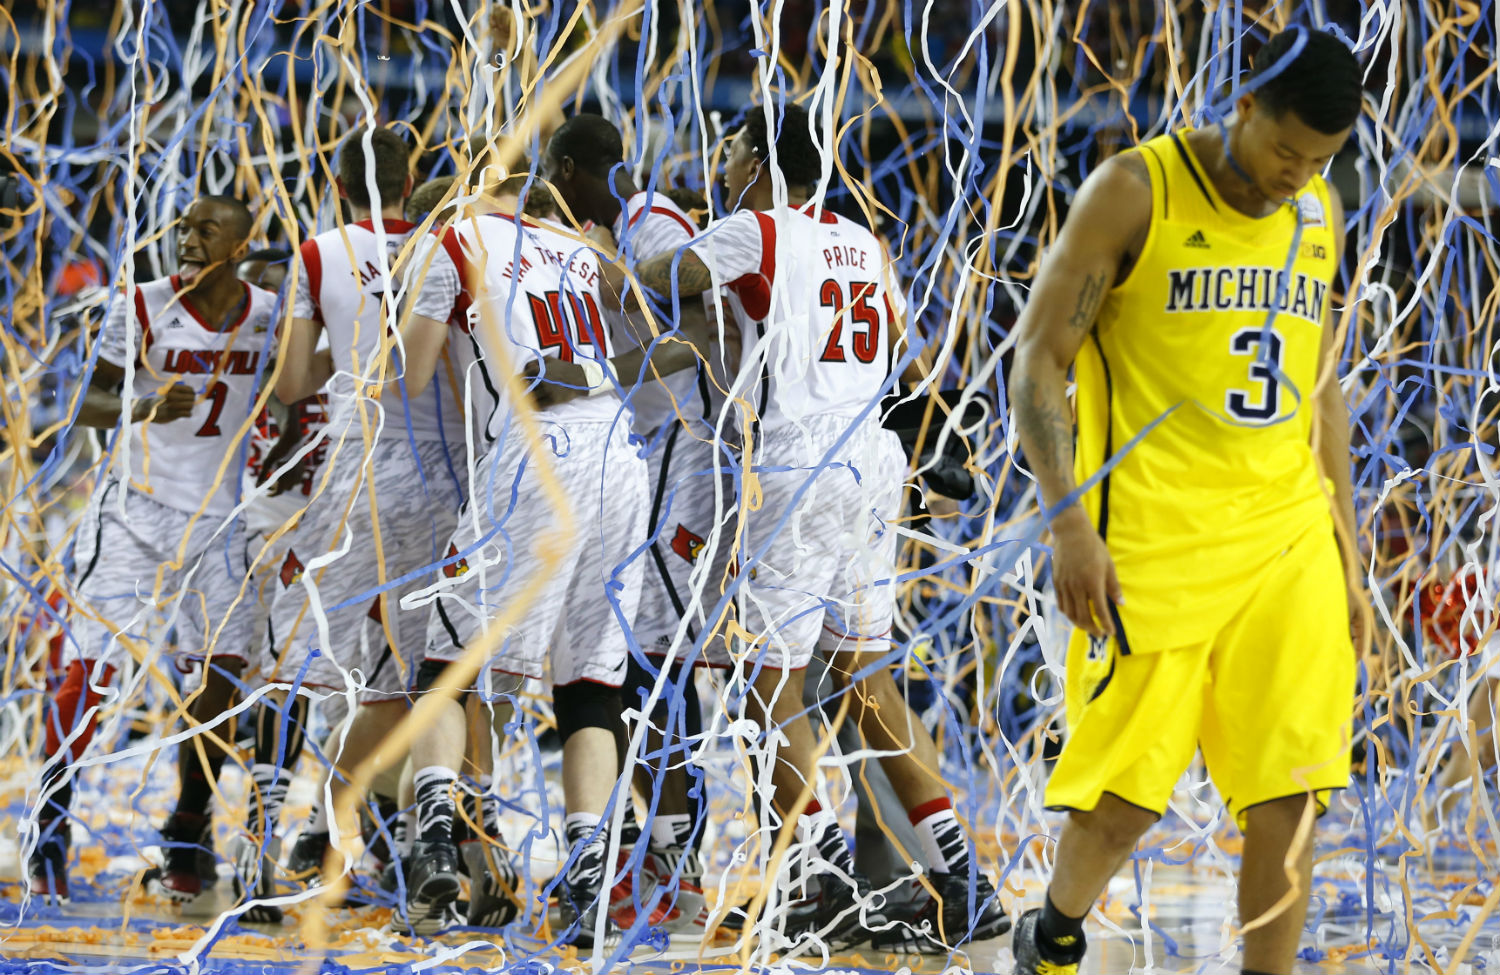 an economist explains why college athletes should be paid the nation michigan wolverines guard trey burke right walks off the court after losing to the louisville cardinals in the 2013 championship game